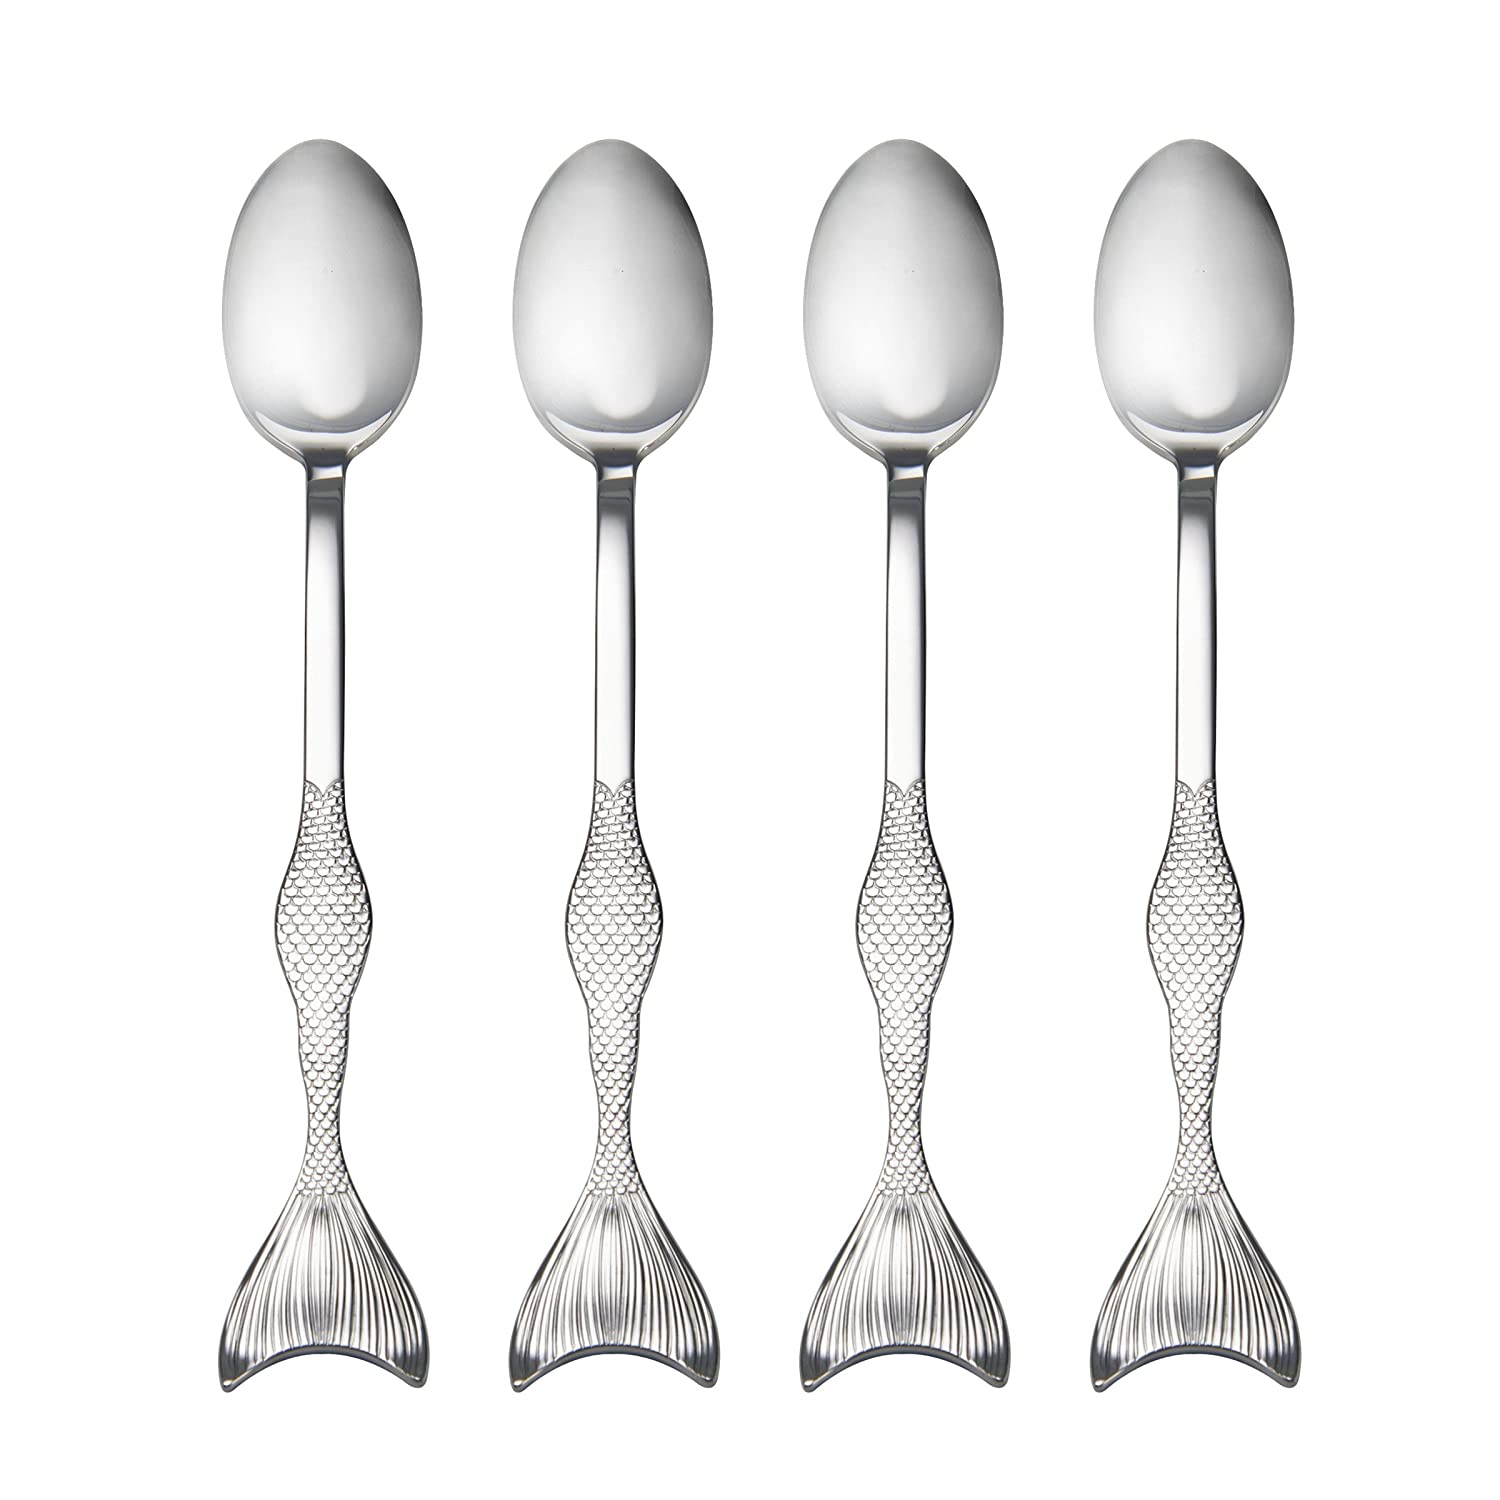 Wallace 5228040 Mermaid Iced Beverage Spoons, One Size, Stainless Steel